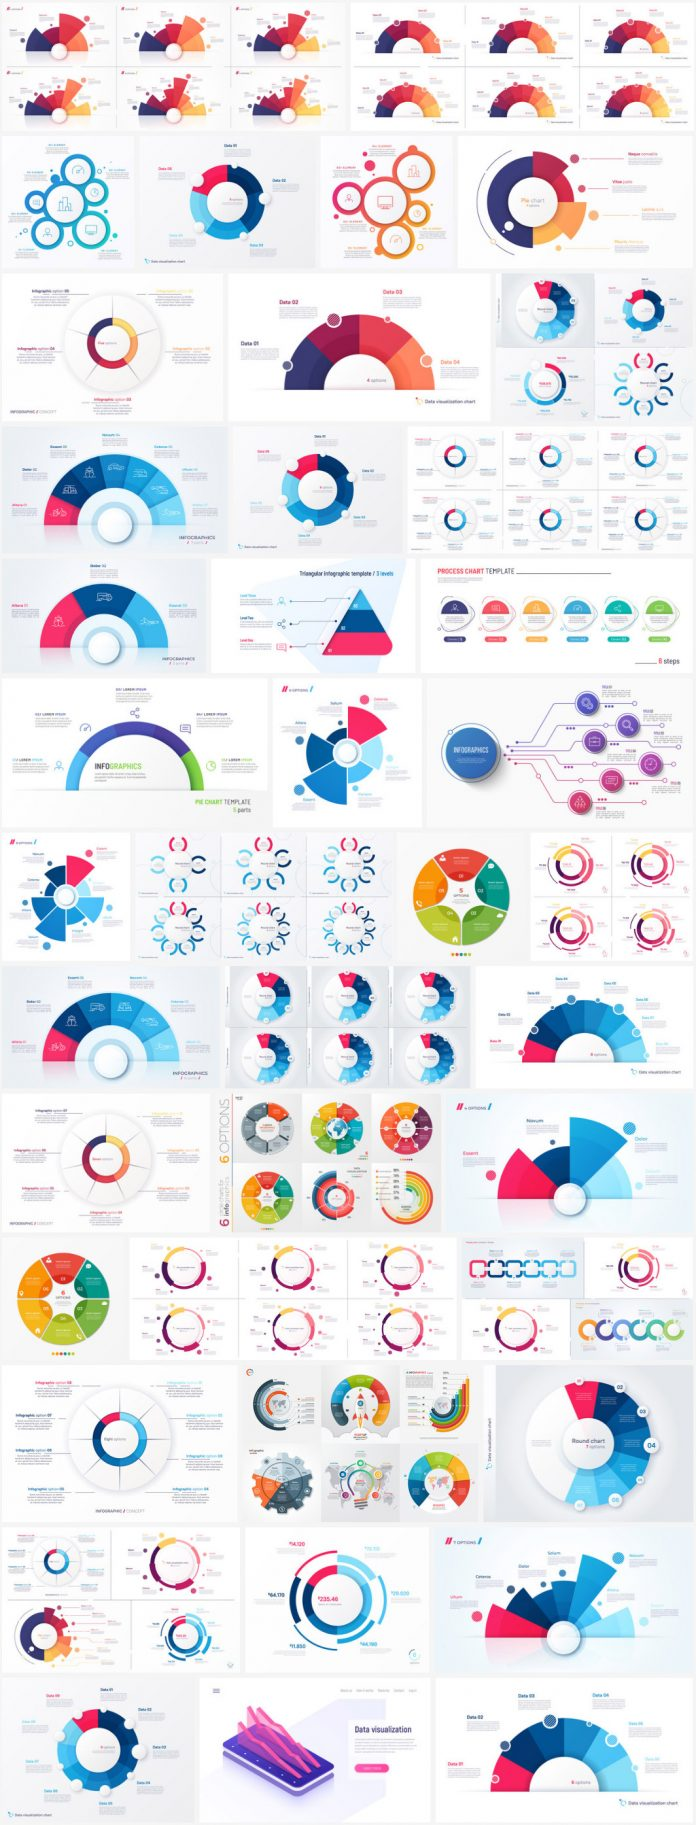 Circular vector charts for web elements and infographics